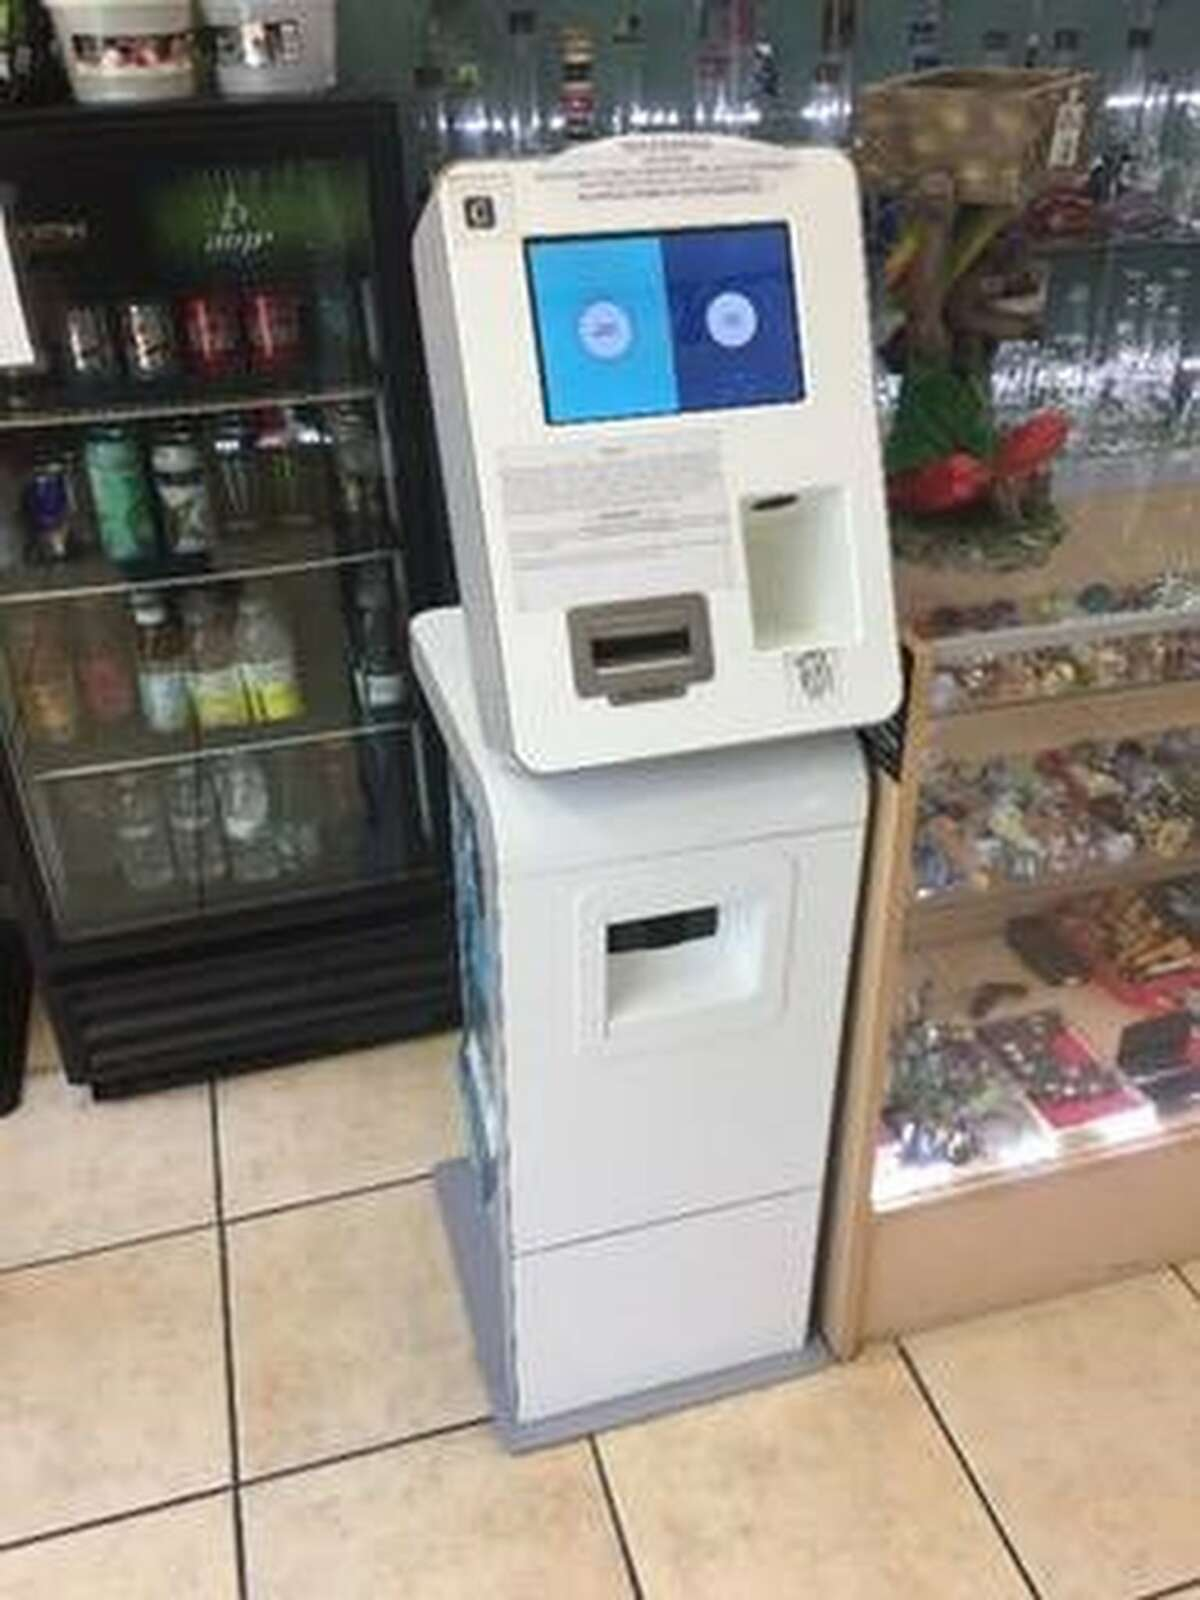 An ATM kiosk is seen in an undated courtesy photo provided Monday, Aug. 26, 2019 by the Central District of California U.S. Attorney�s Office. In prosecuting Kunal Kalra for money laundering in Los Angeles and San Antonio, federal agents found he had this kiosk at his money-remitting business in Los Angeles that drug dealers used to exchange virtual currency for real cash and vice versa.